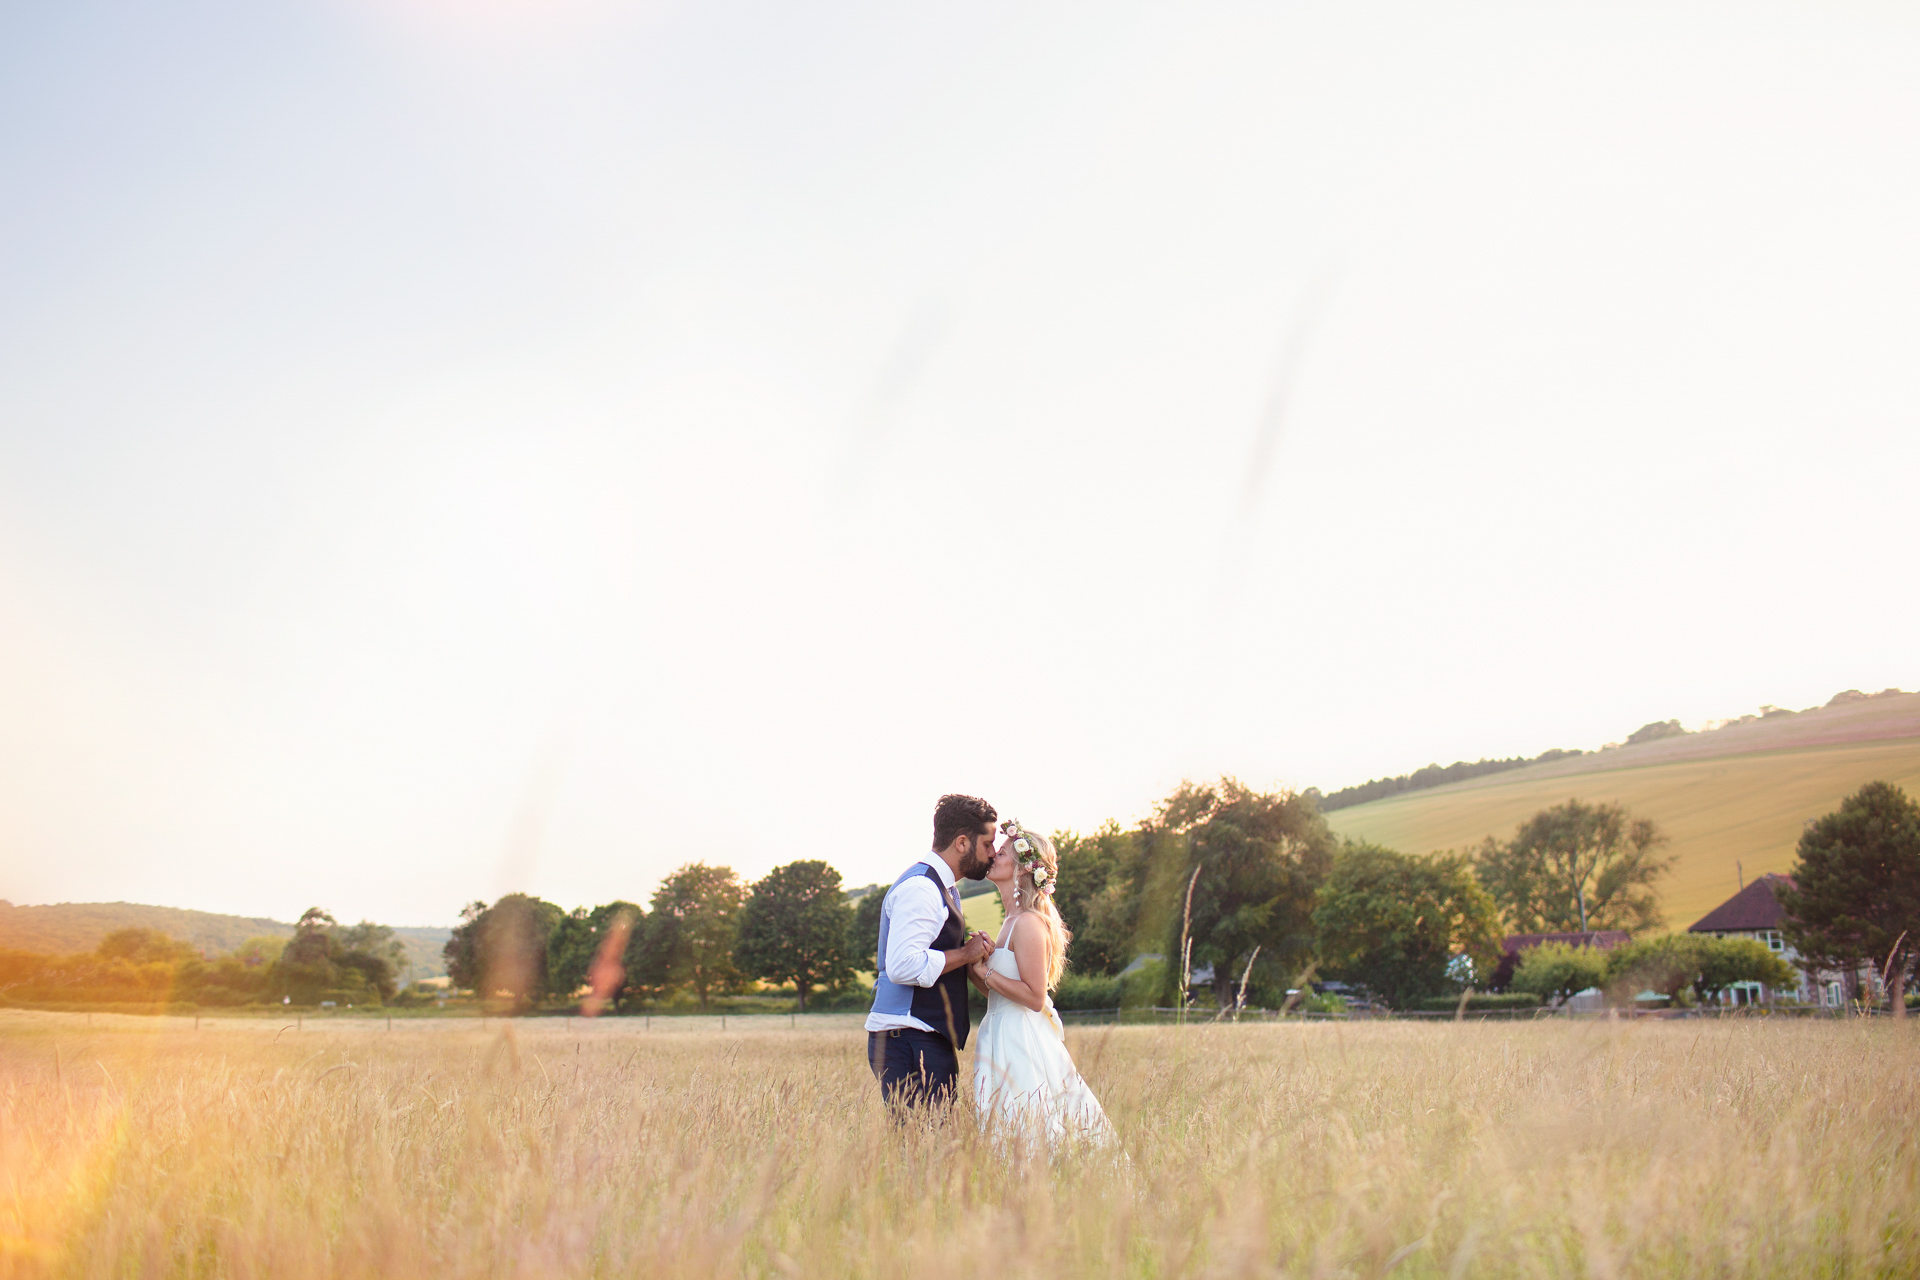 Festival Wedding at Upwaltham Barns in Chichester